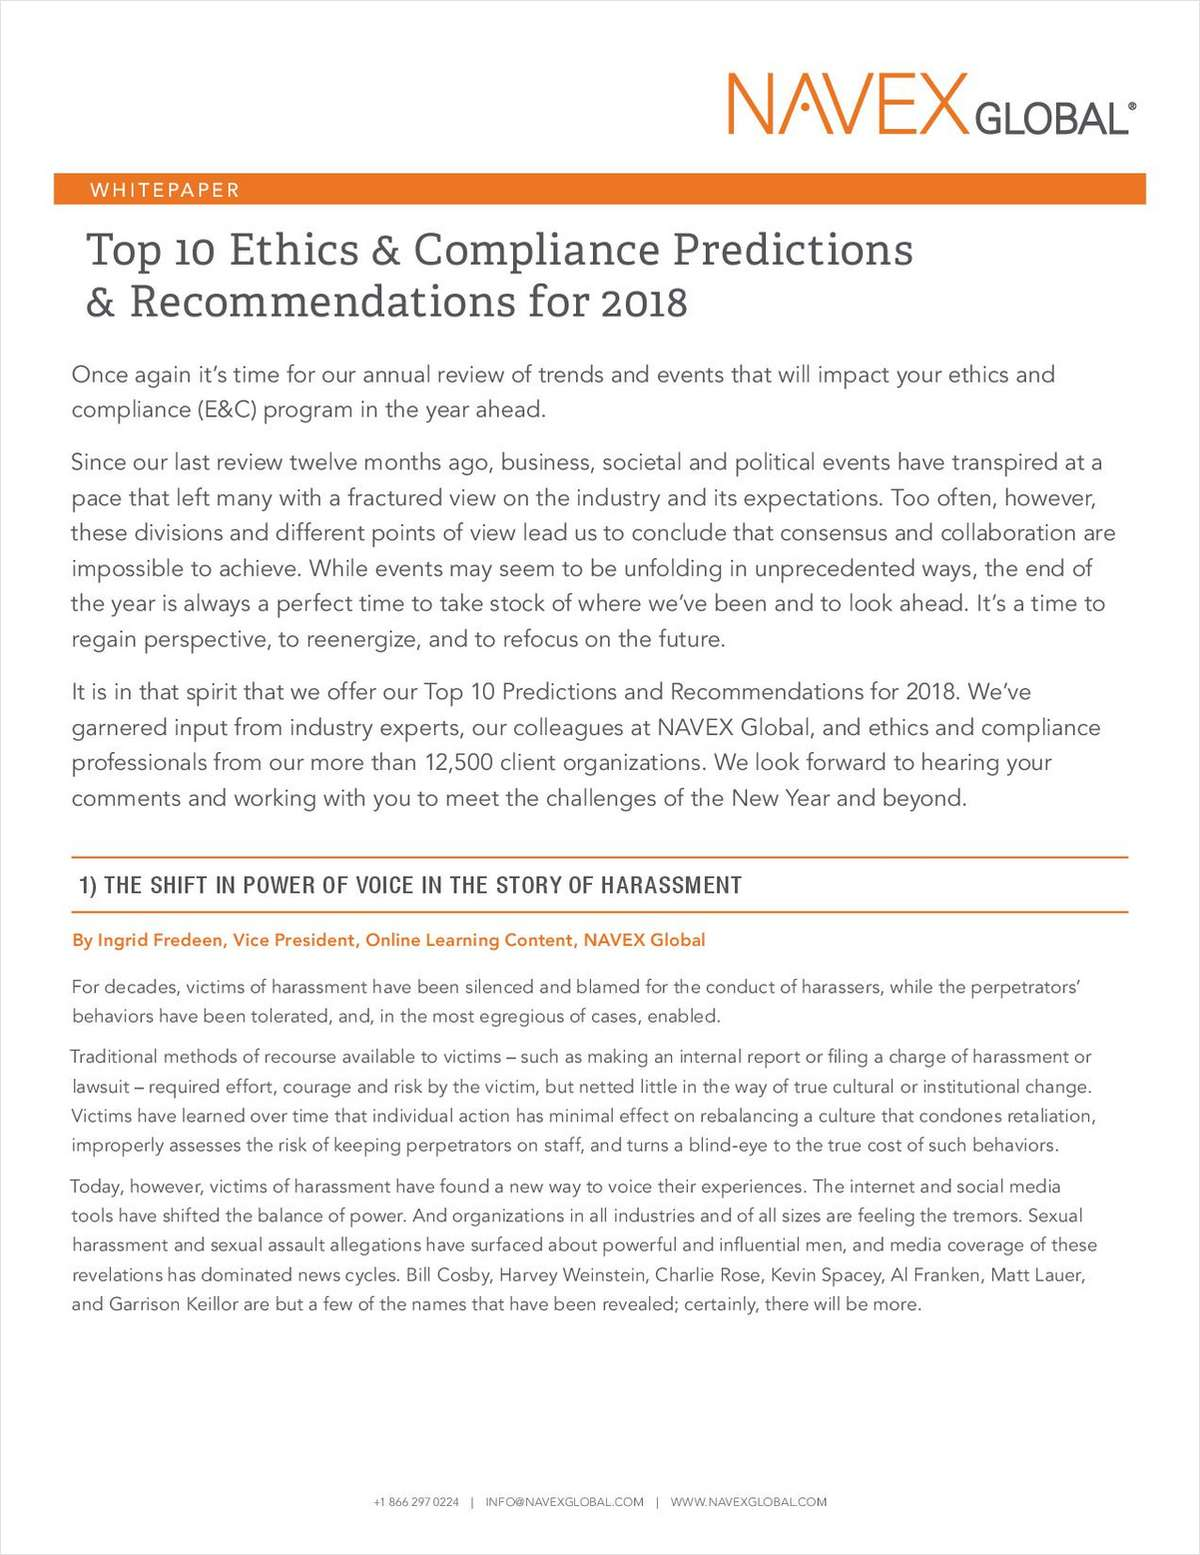 Top 10 Ethics & Compliance Predictions & Recommendations for 2018